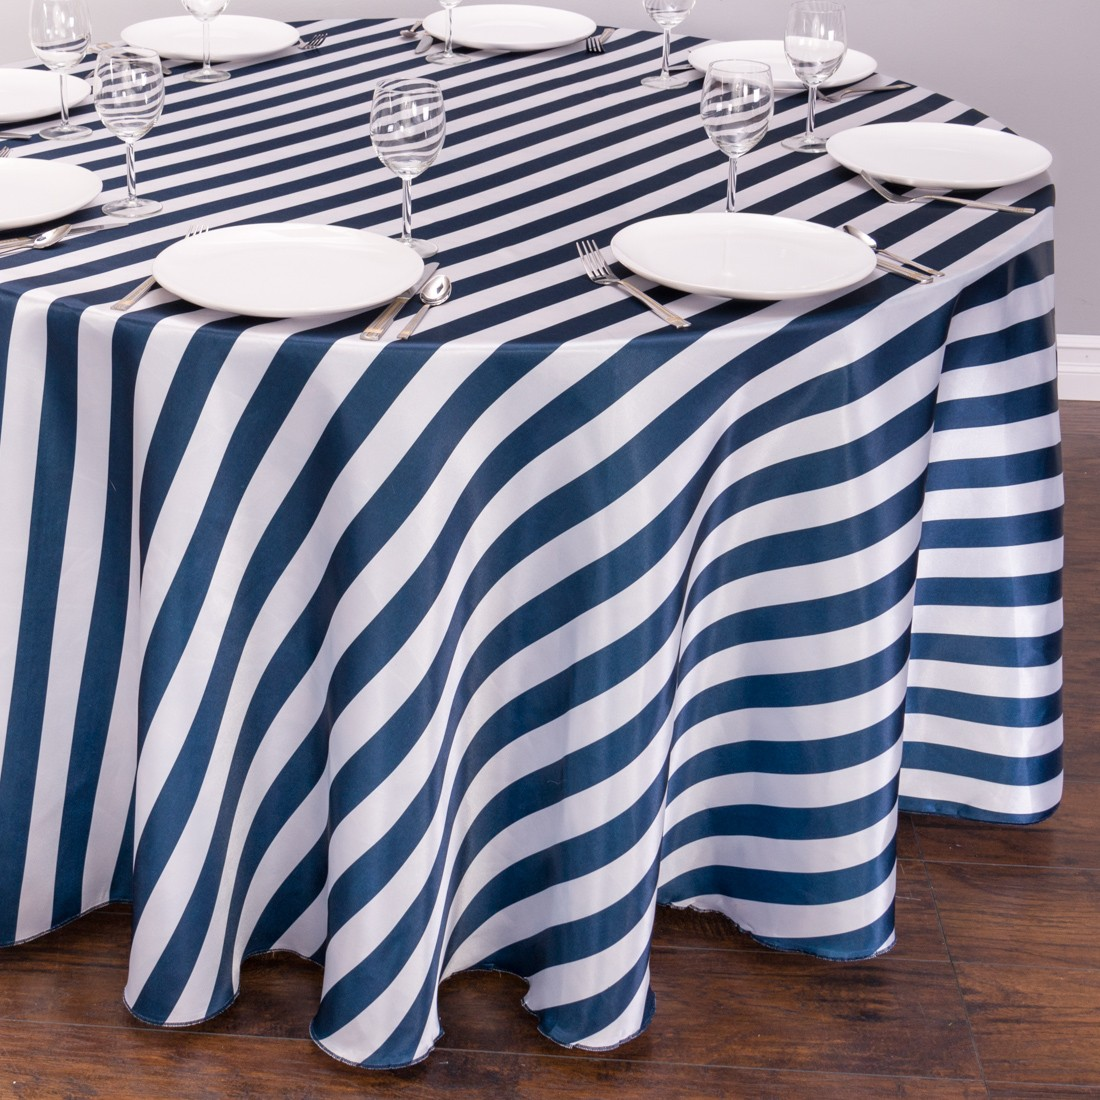 Striped Satin Tablecloth Round   Navy Blue U0026 White | The Pretty Prop Shop  Wedding And Event Hire